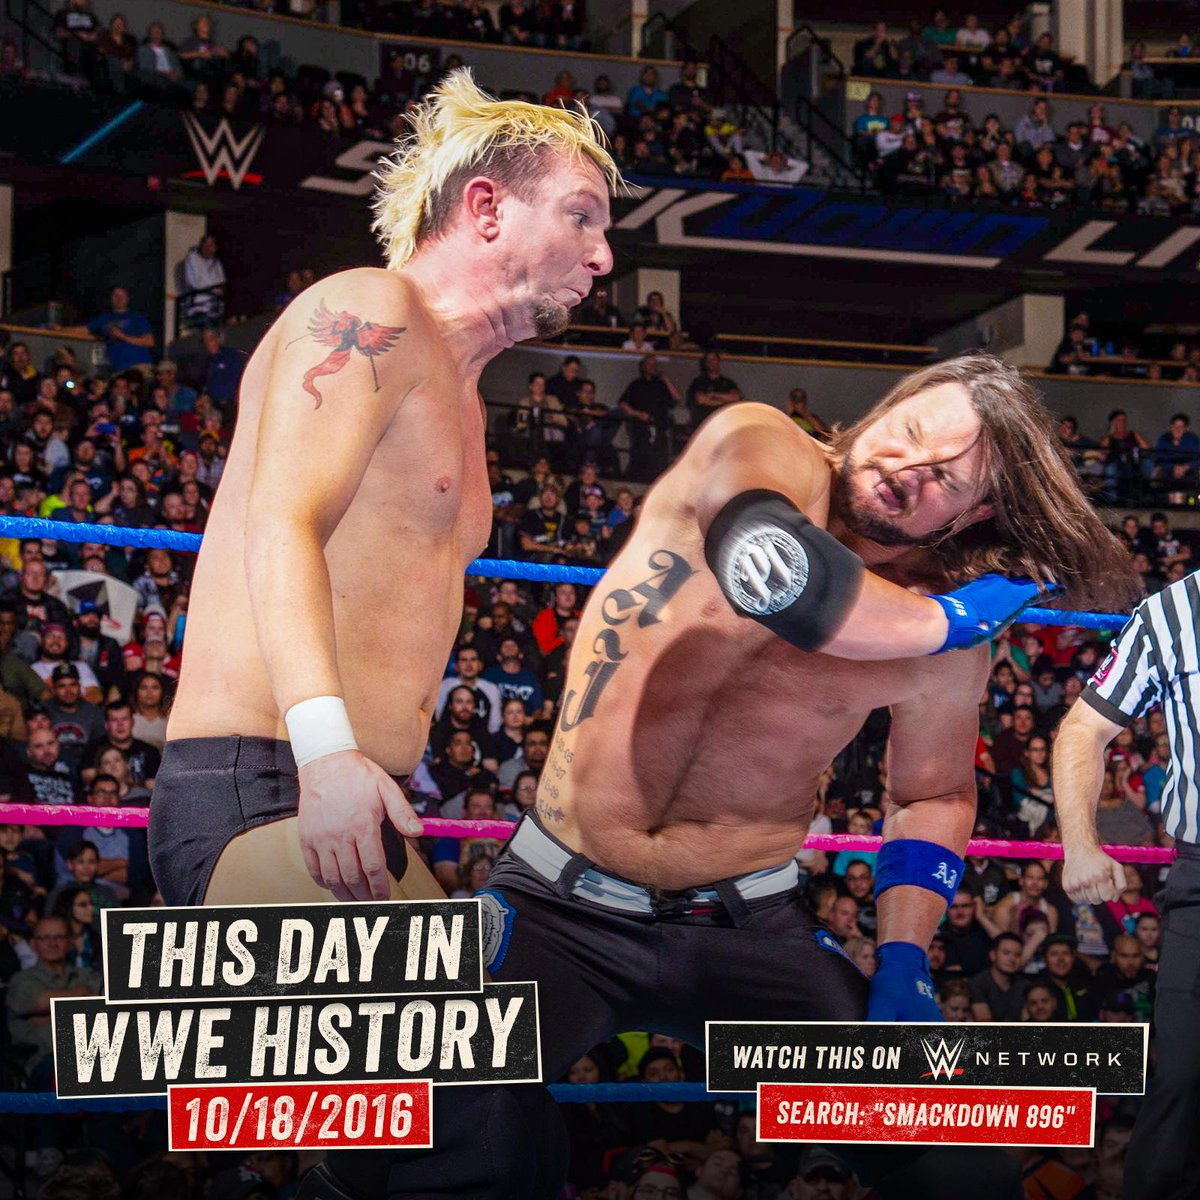 .@realellsworth got the chance of a lifetime TWO years ago today on #SDLive against @AJStylesOrg! wwe.me/7h5IHc